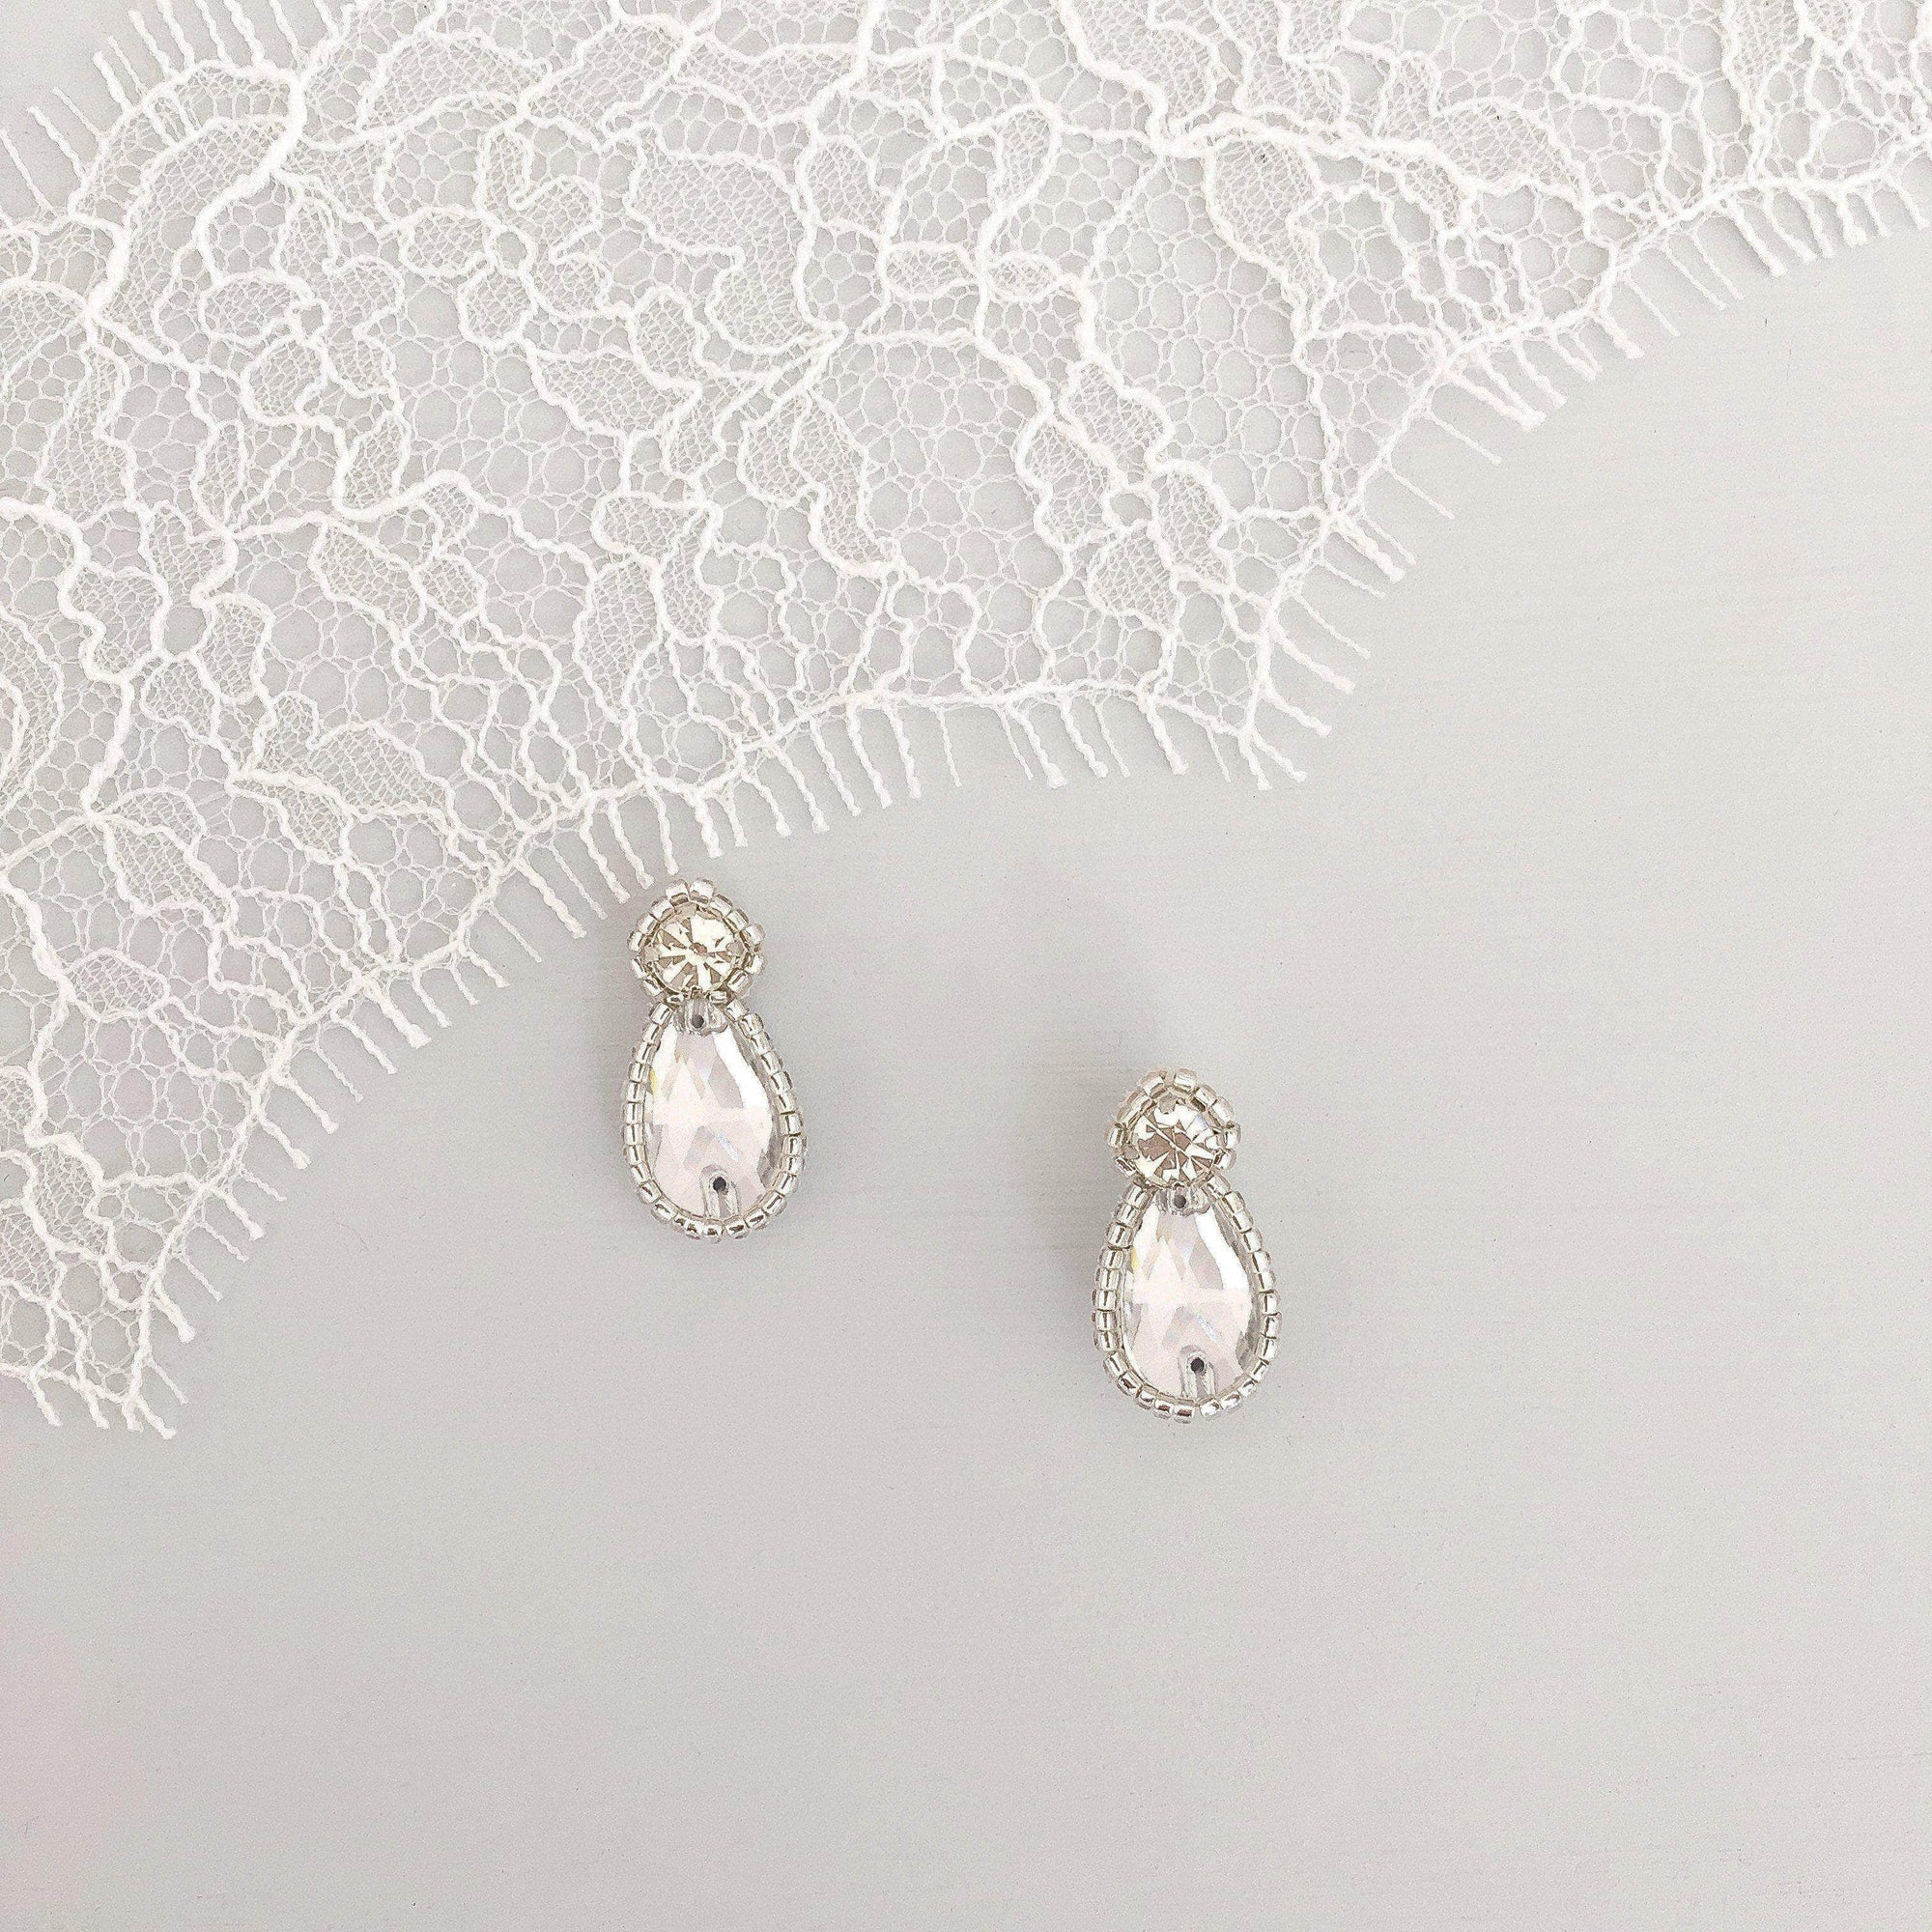 Wedding Earring Silver Crystal wedding earrings - 'Zoe'